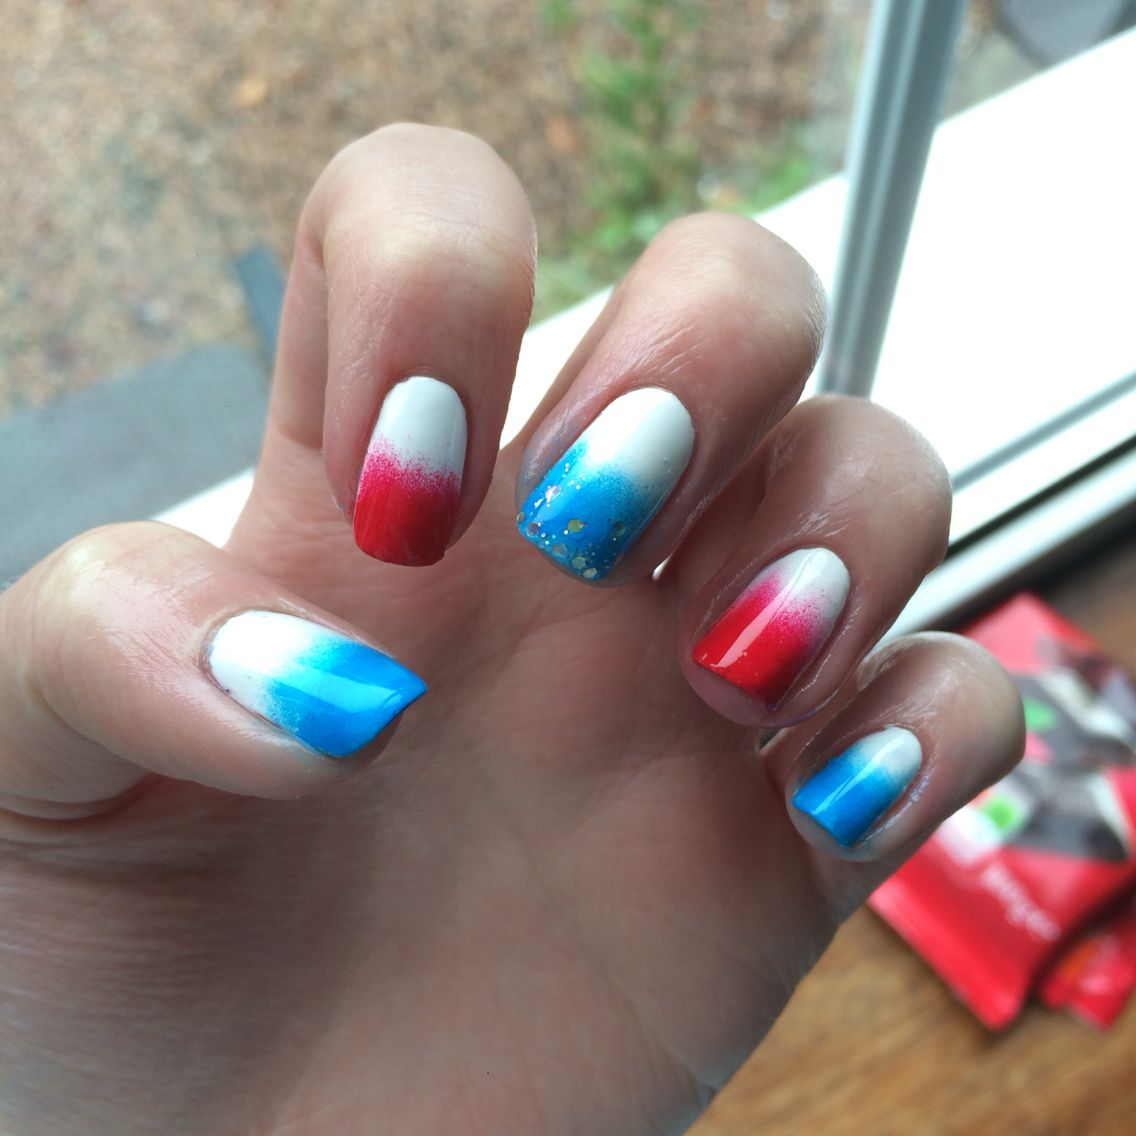 French ombré blue red sponge nail art manicure | nails | Pinterest ...